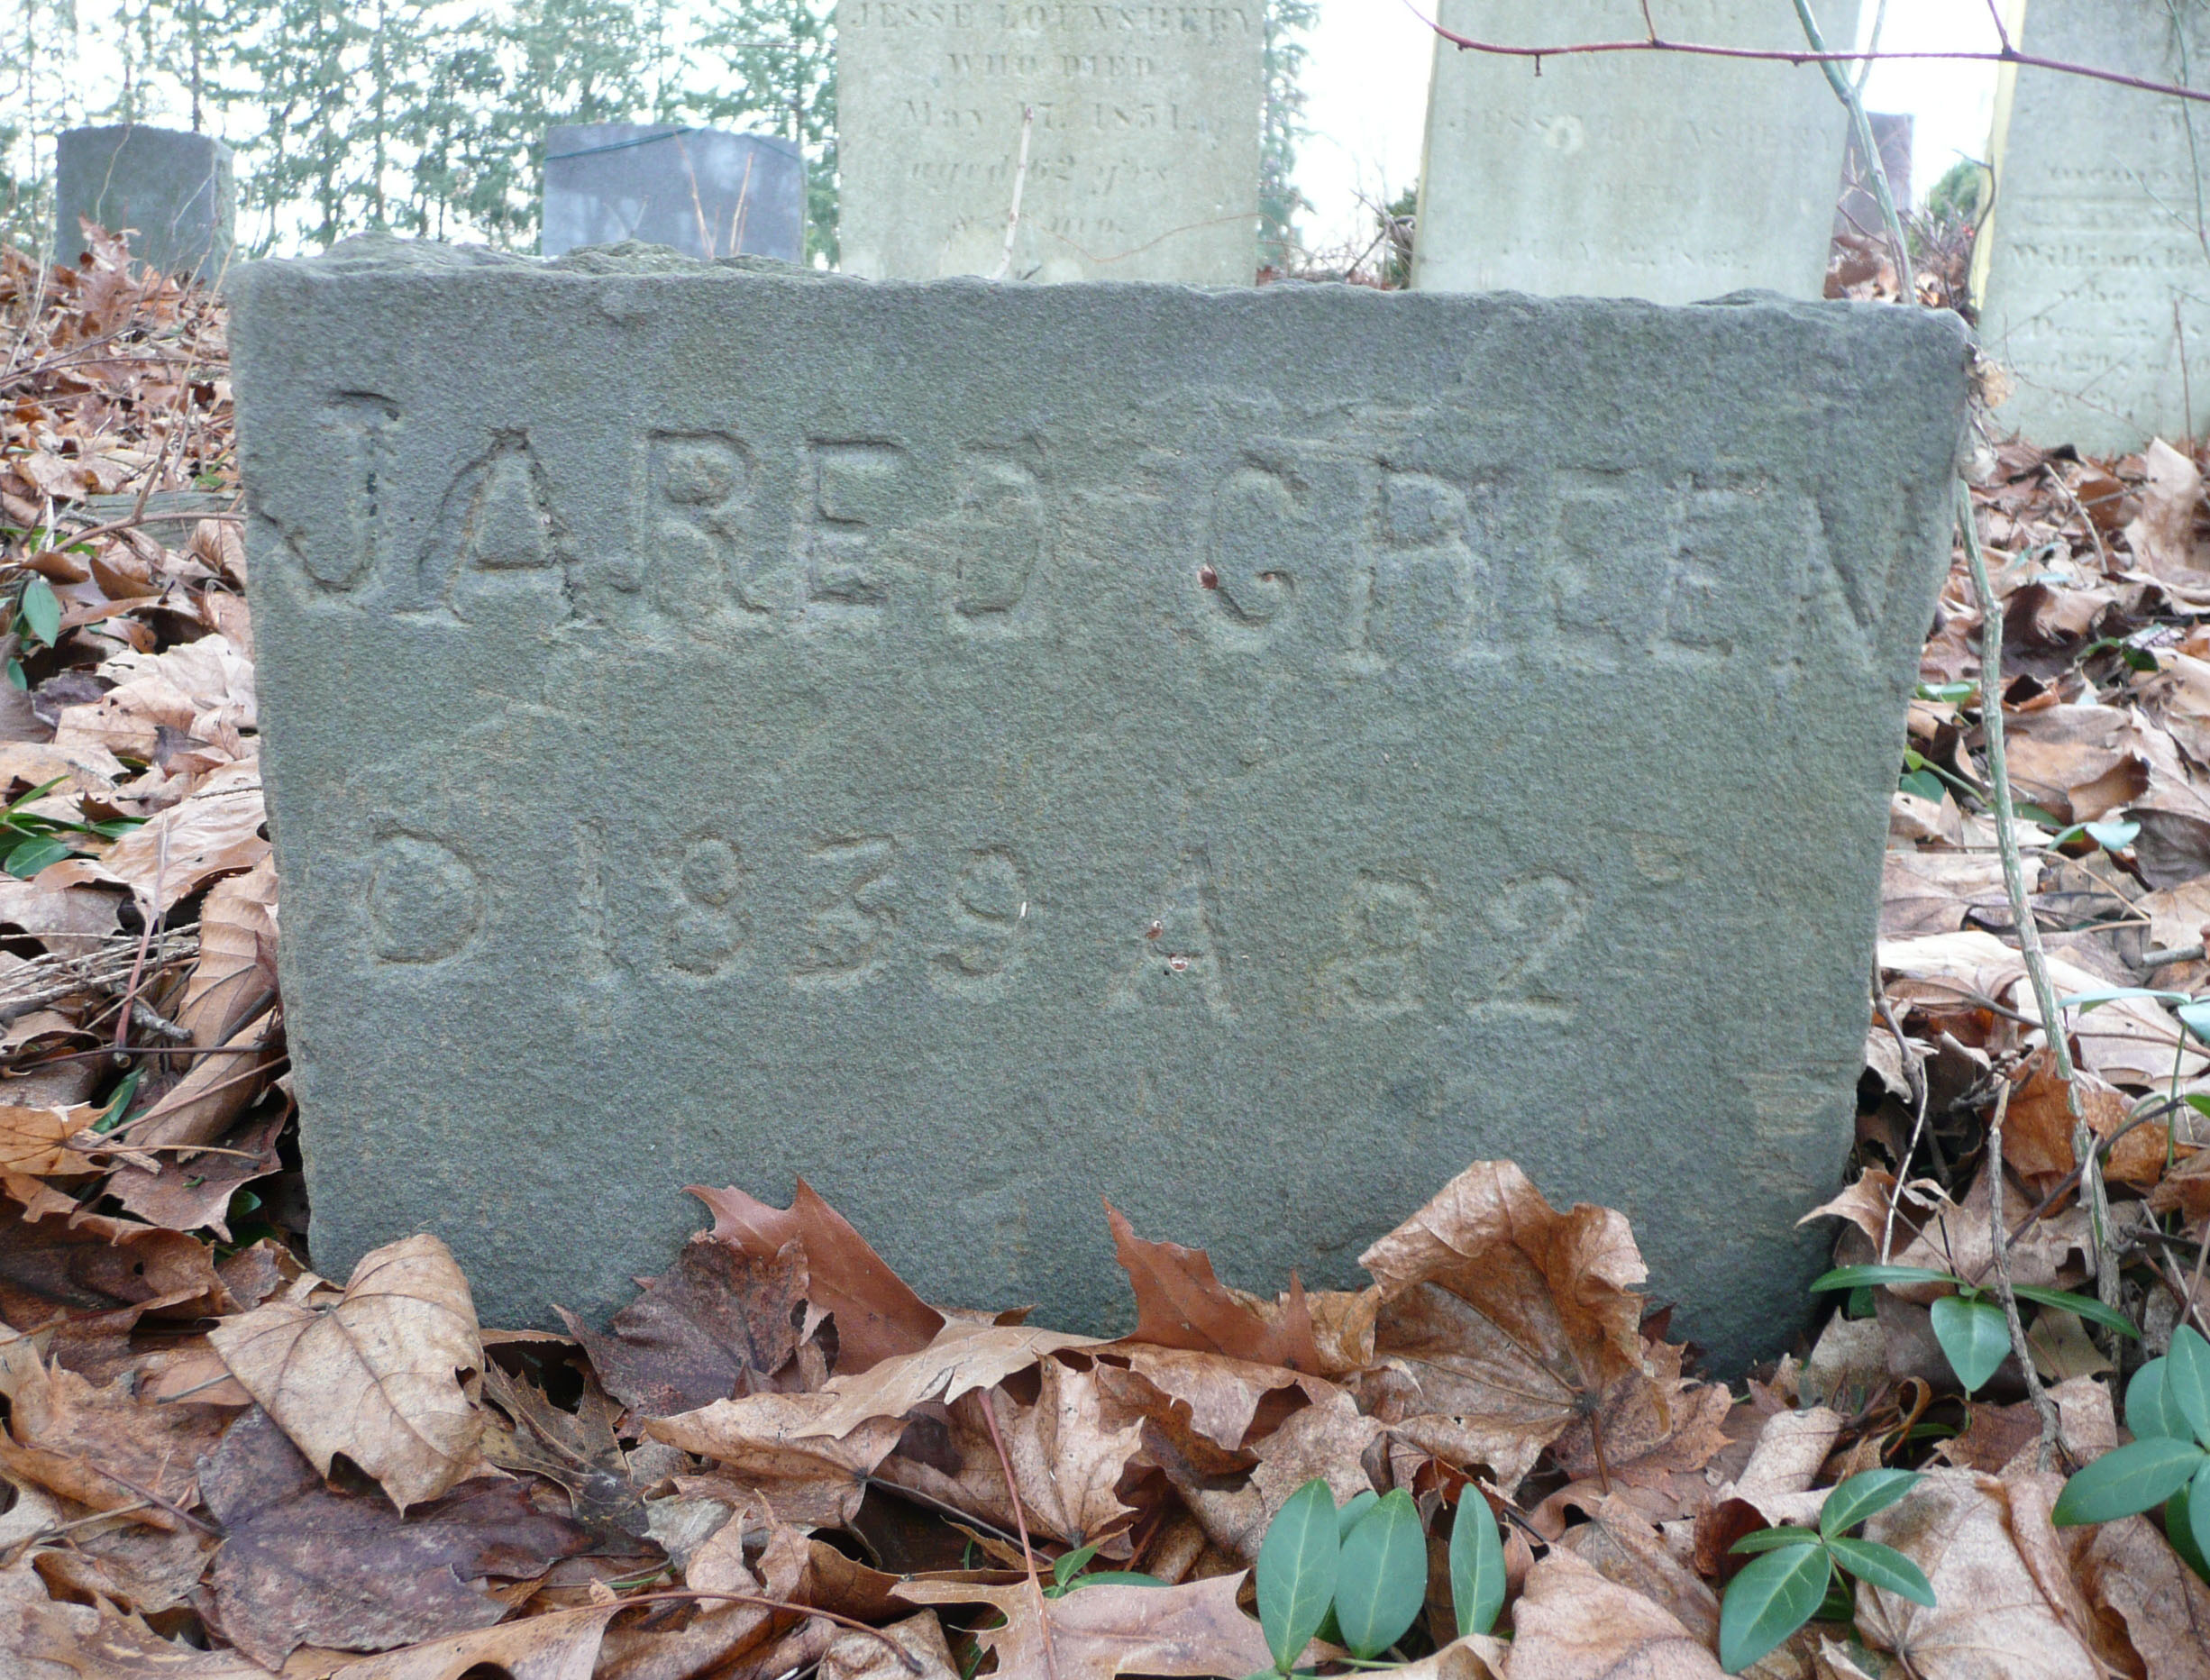 The tombstone of Jared Green, who died in 1839 at the age of 82, at the Amawalk Friends Meeting House Cemetery.